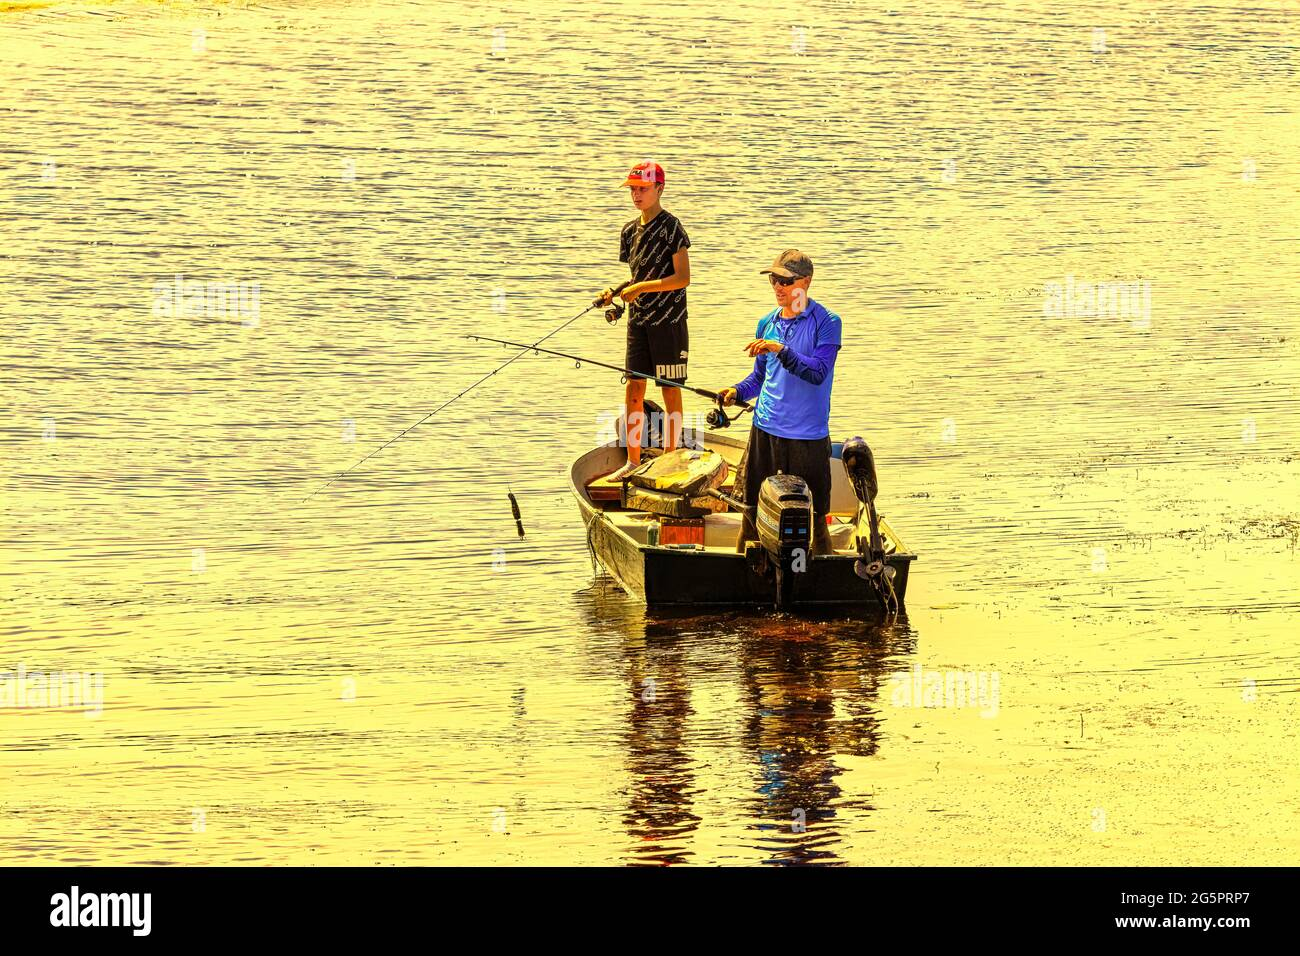 father-and-son-fly-fishing-from-a-boat-a